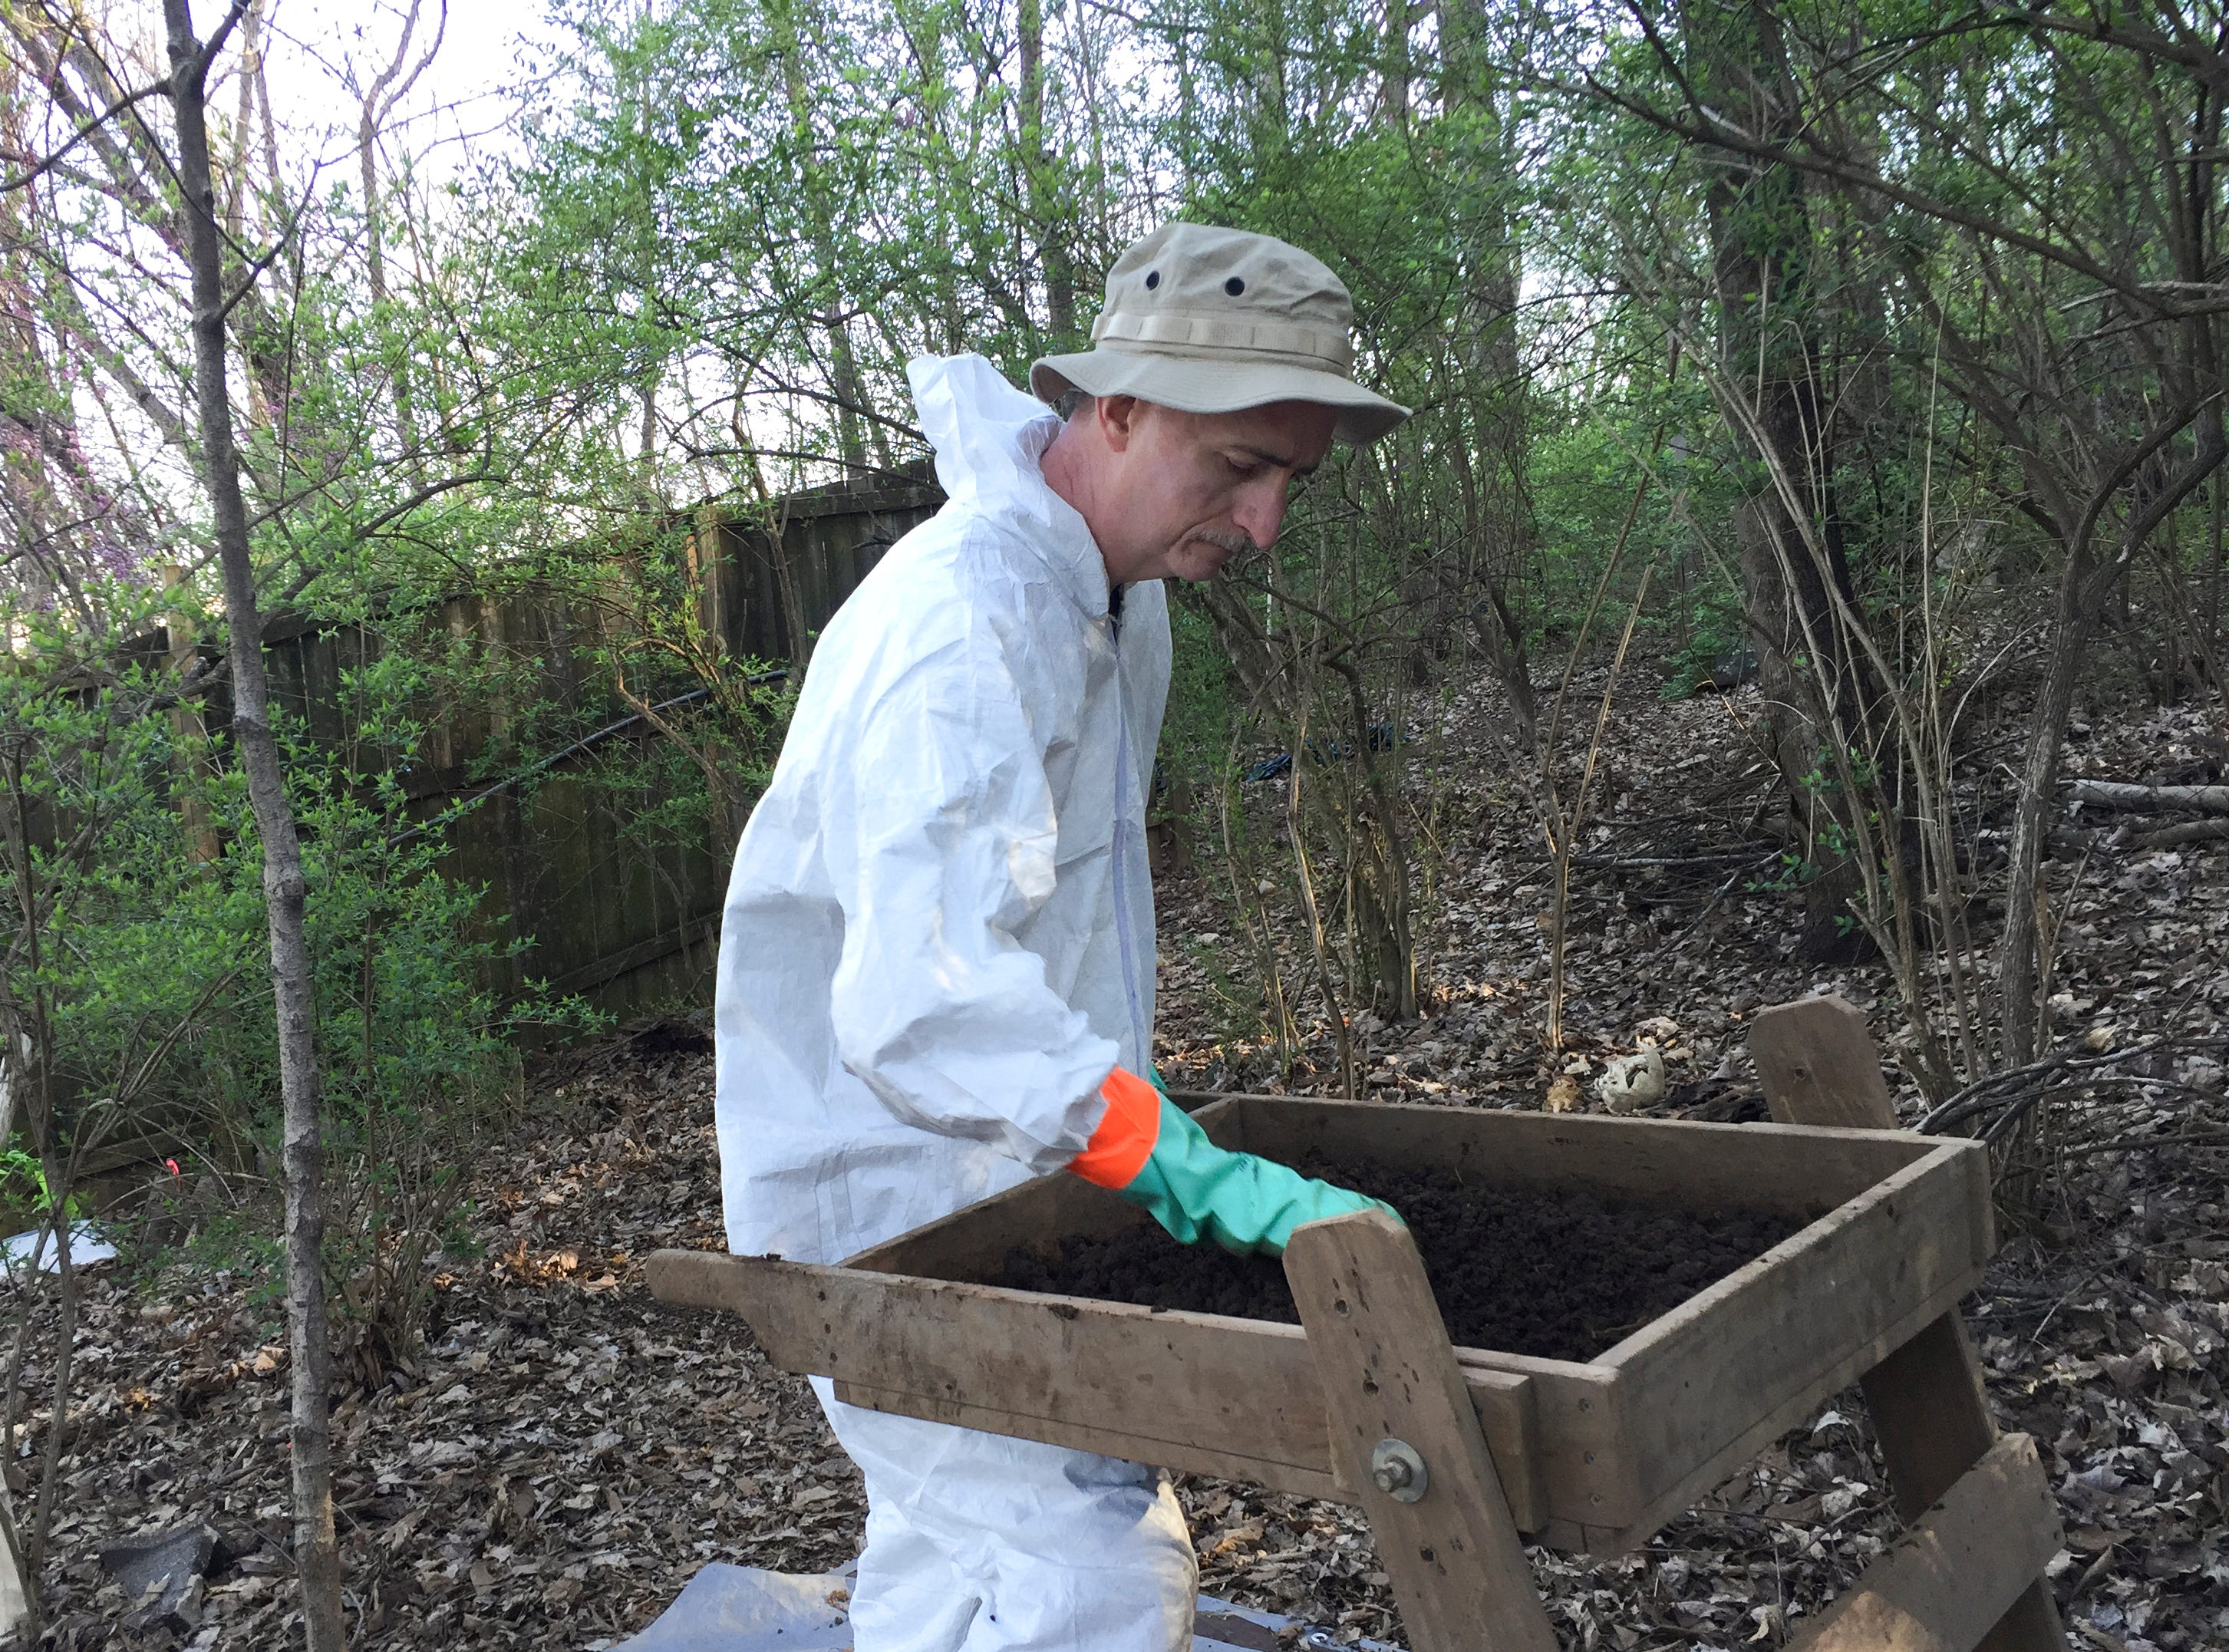 Robert Weiderhold, who works at the FBI Laboratory in Quantico, VA, sifts dirt for evidence of human remains during a training for FBI agents at the University of Tennessee Forensic Anthropology Center, often called the body farm, on Thursday, March 17, 2016. FBI agents from across the country are attending the weeklong training.